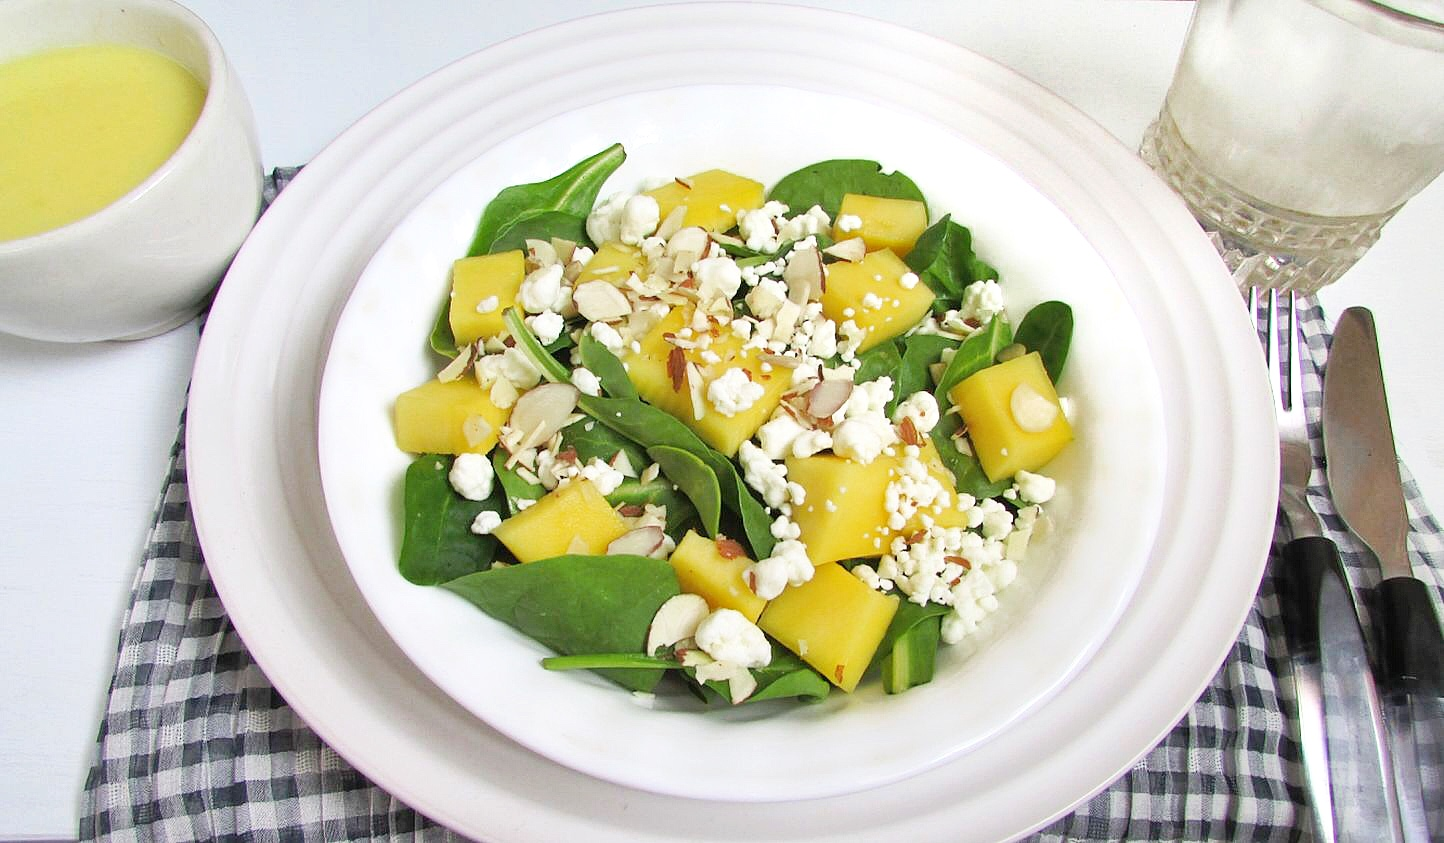 Mango and Goat Cheese Salad with Homemade Dressing